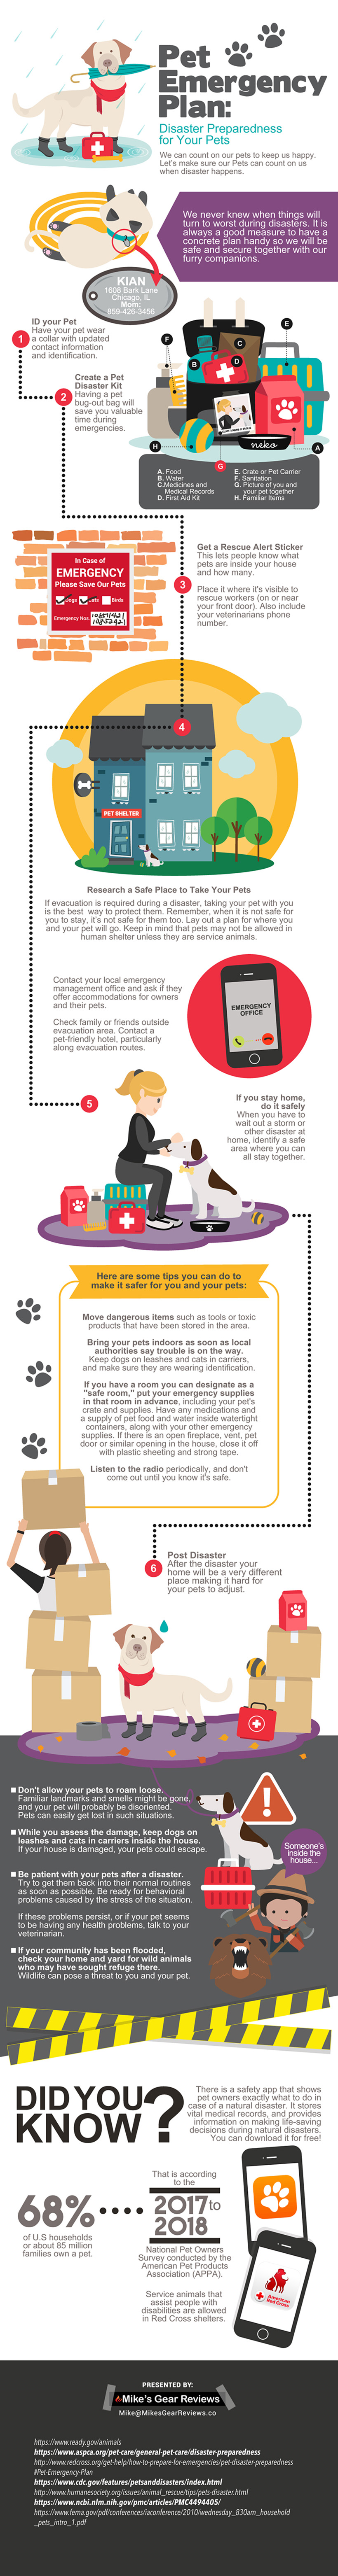 Pet Emergency Plan – Why You Need One